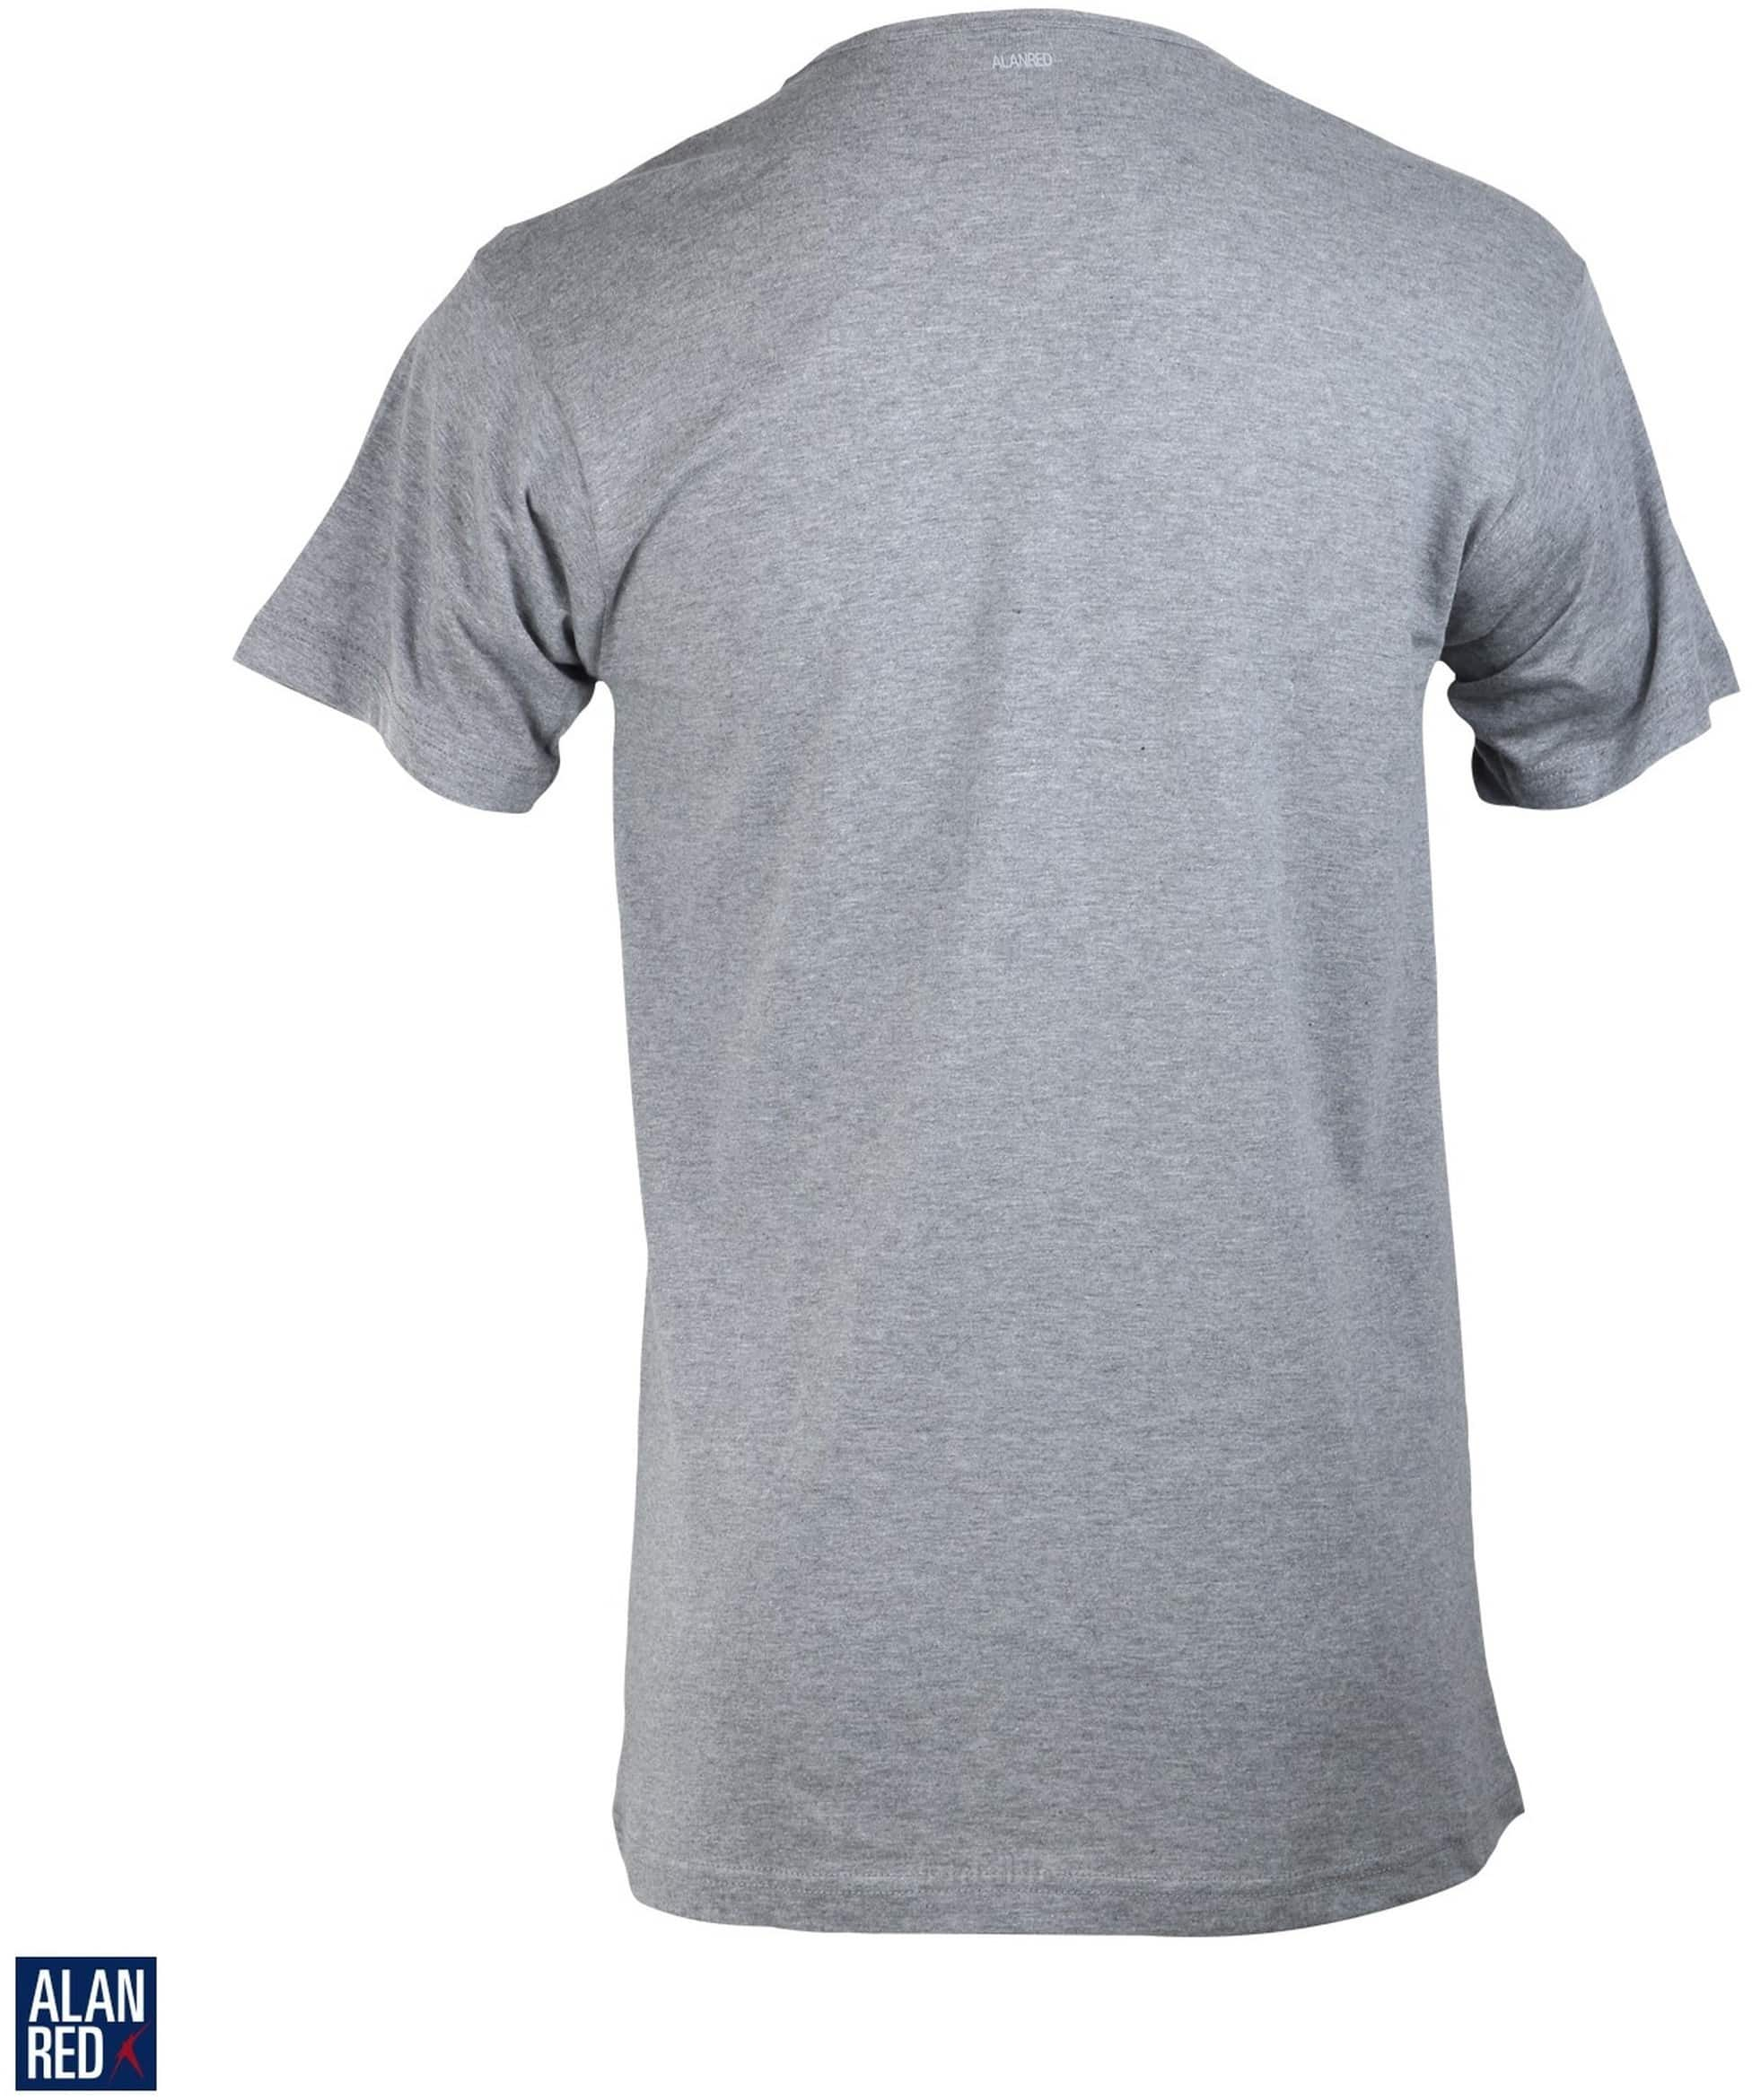 Alan Red Vermont T-shirt V-Neck Mouse 1-Pack foto 2